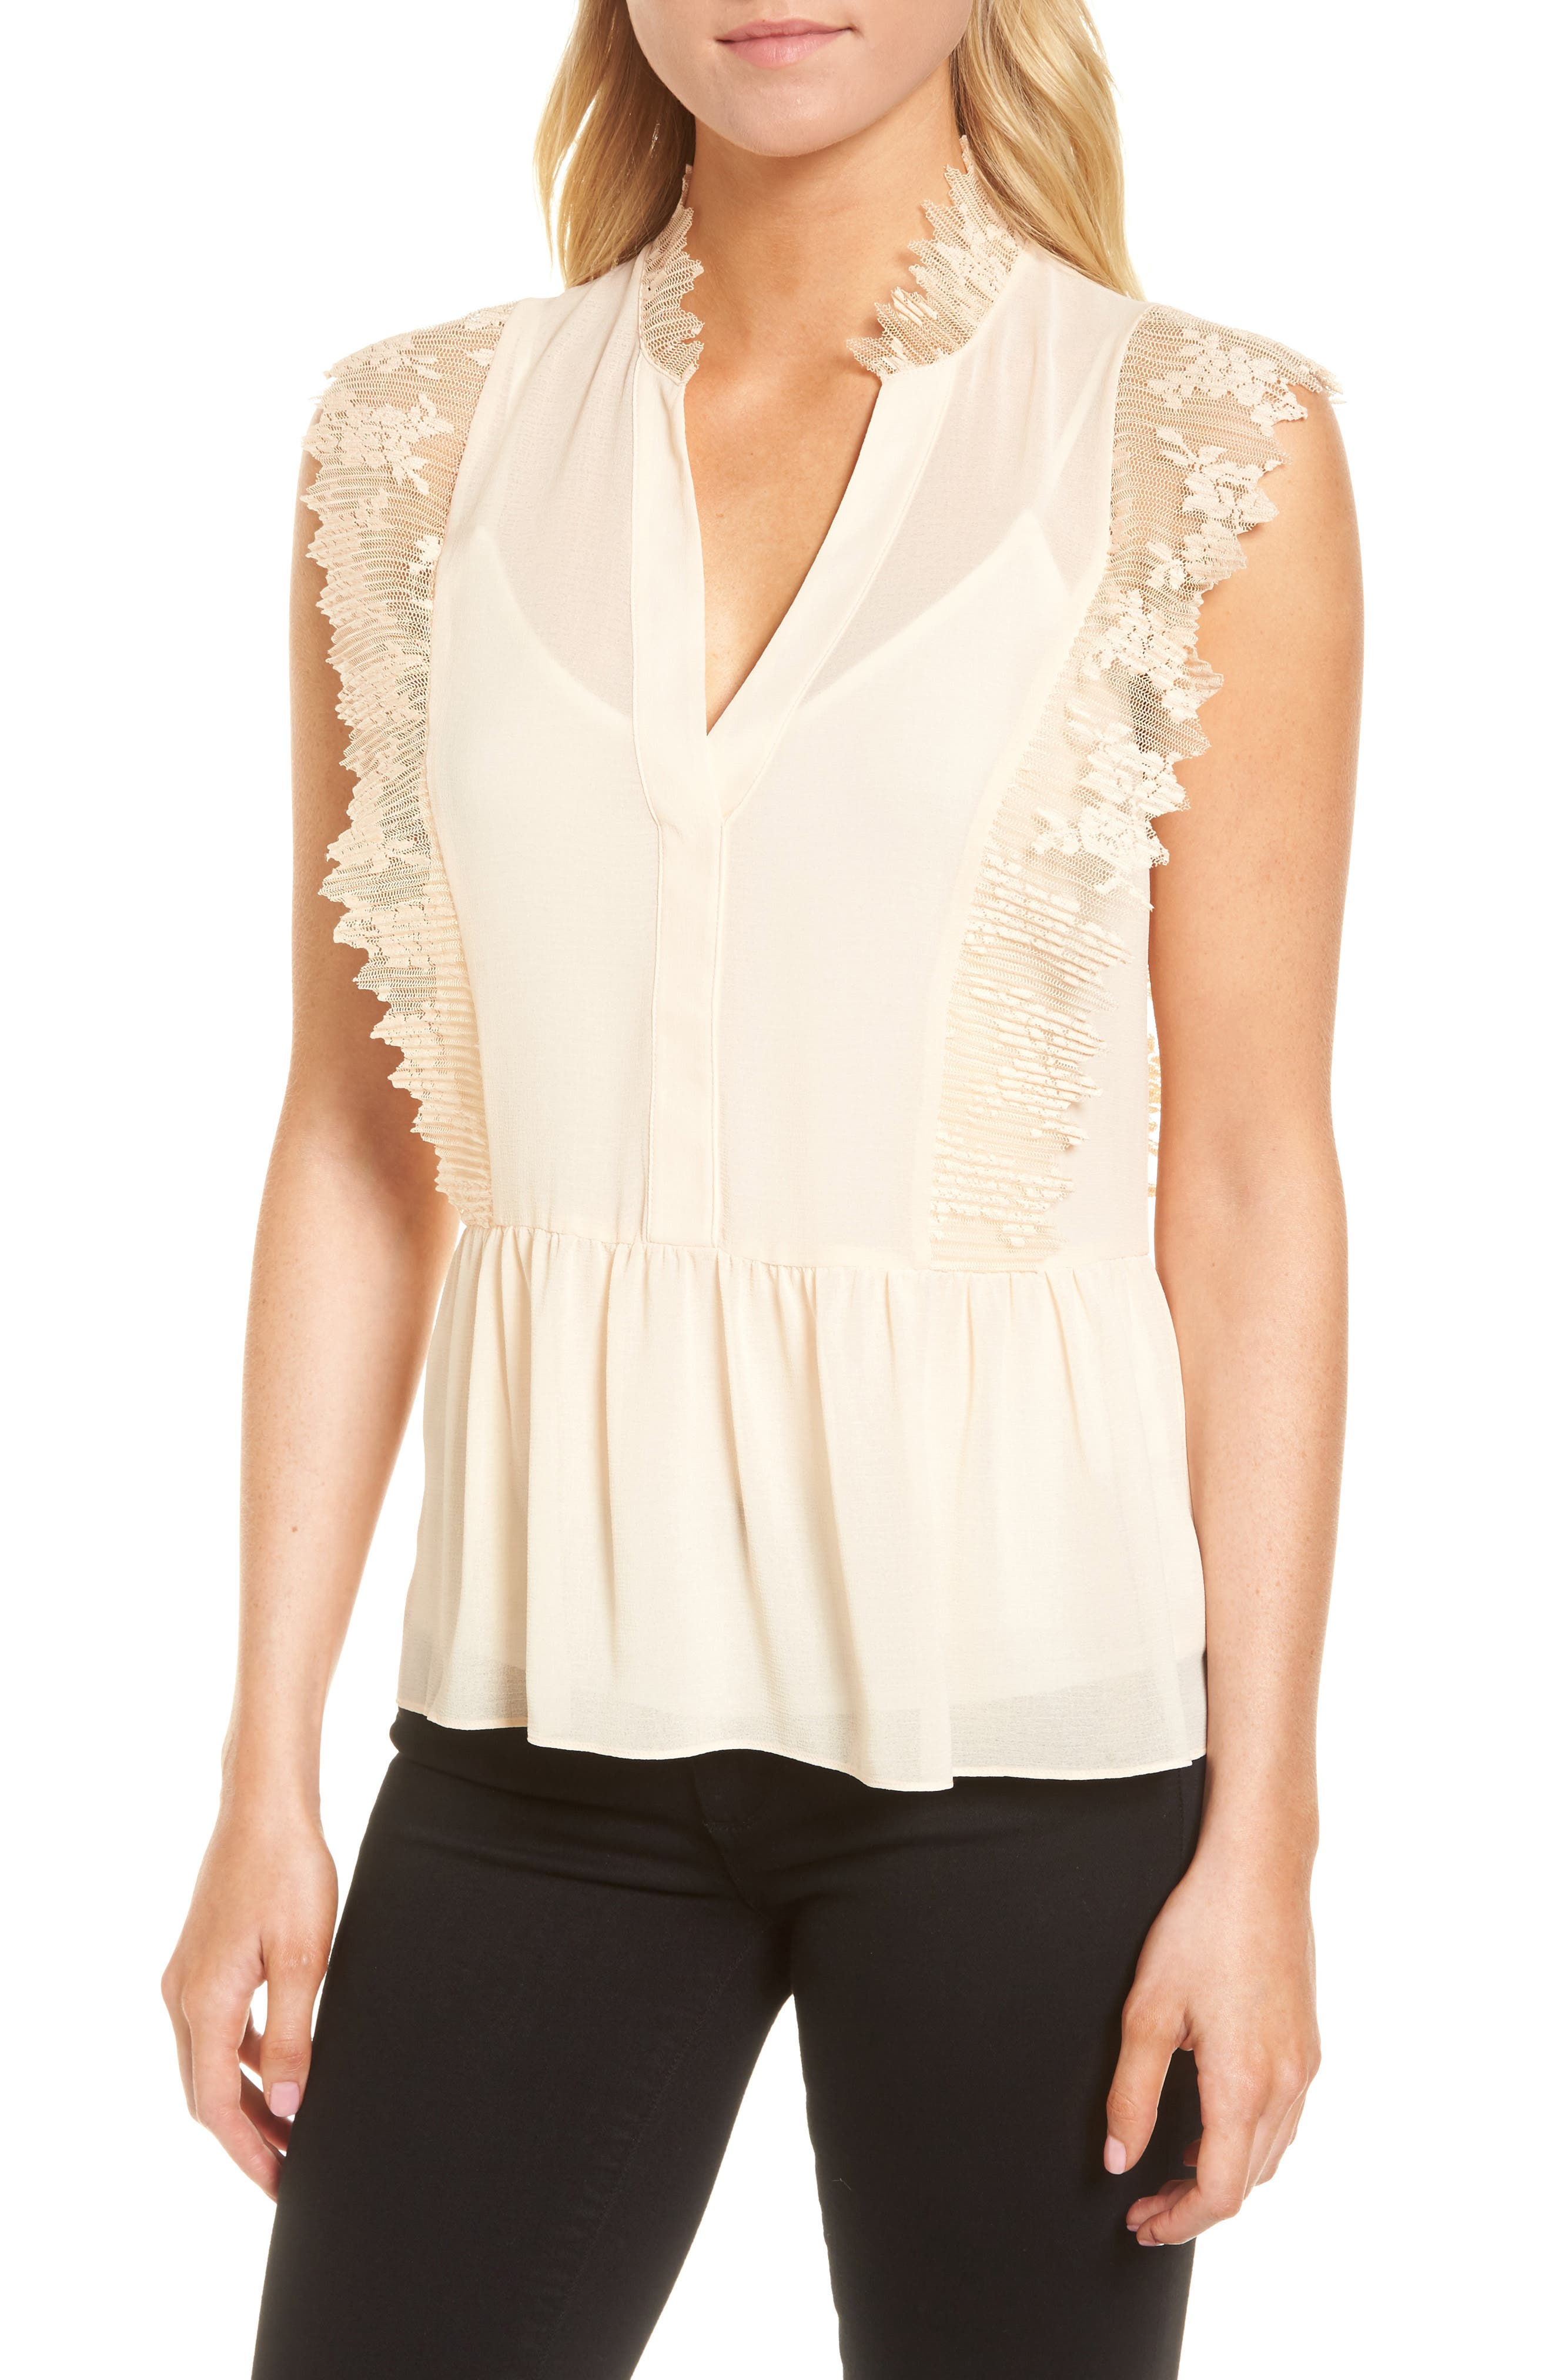 Alternate Image 1 Selected - Chelsea28 Lace Trim Top